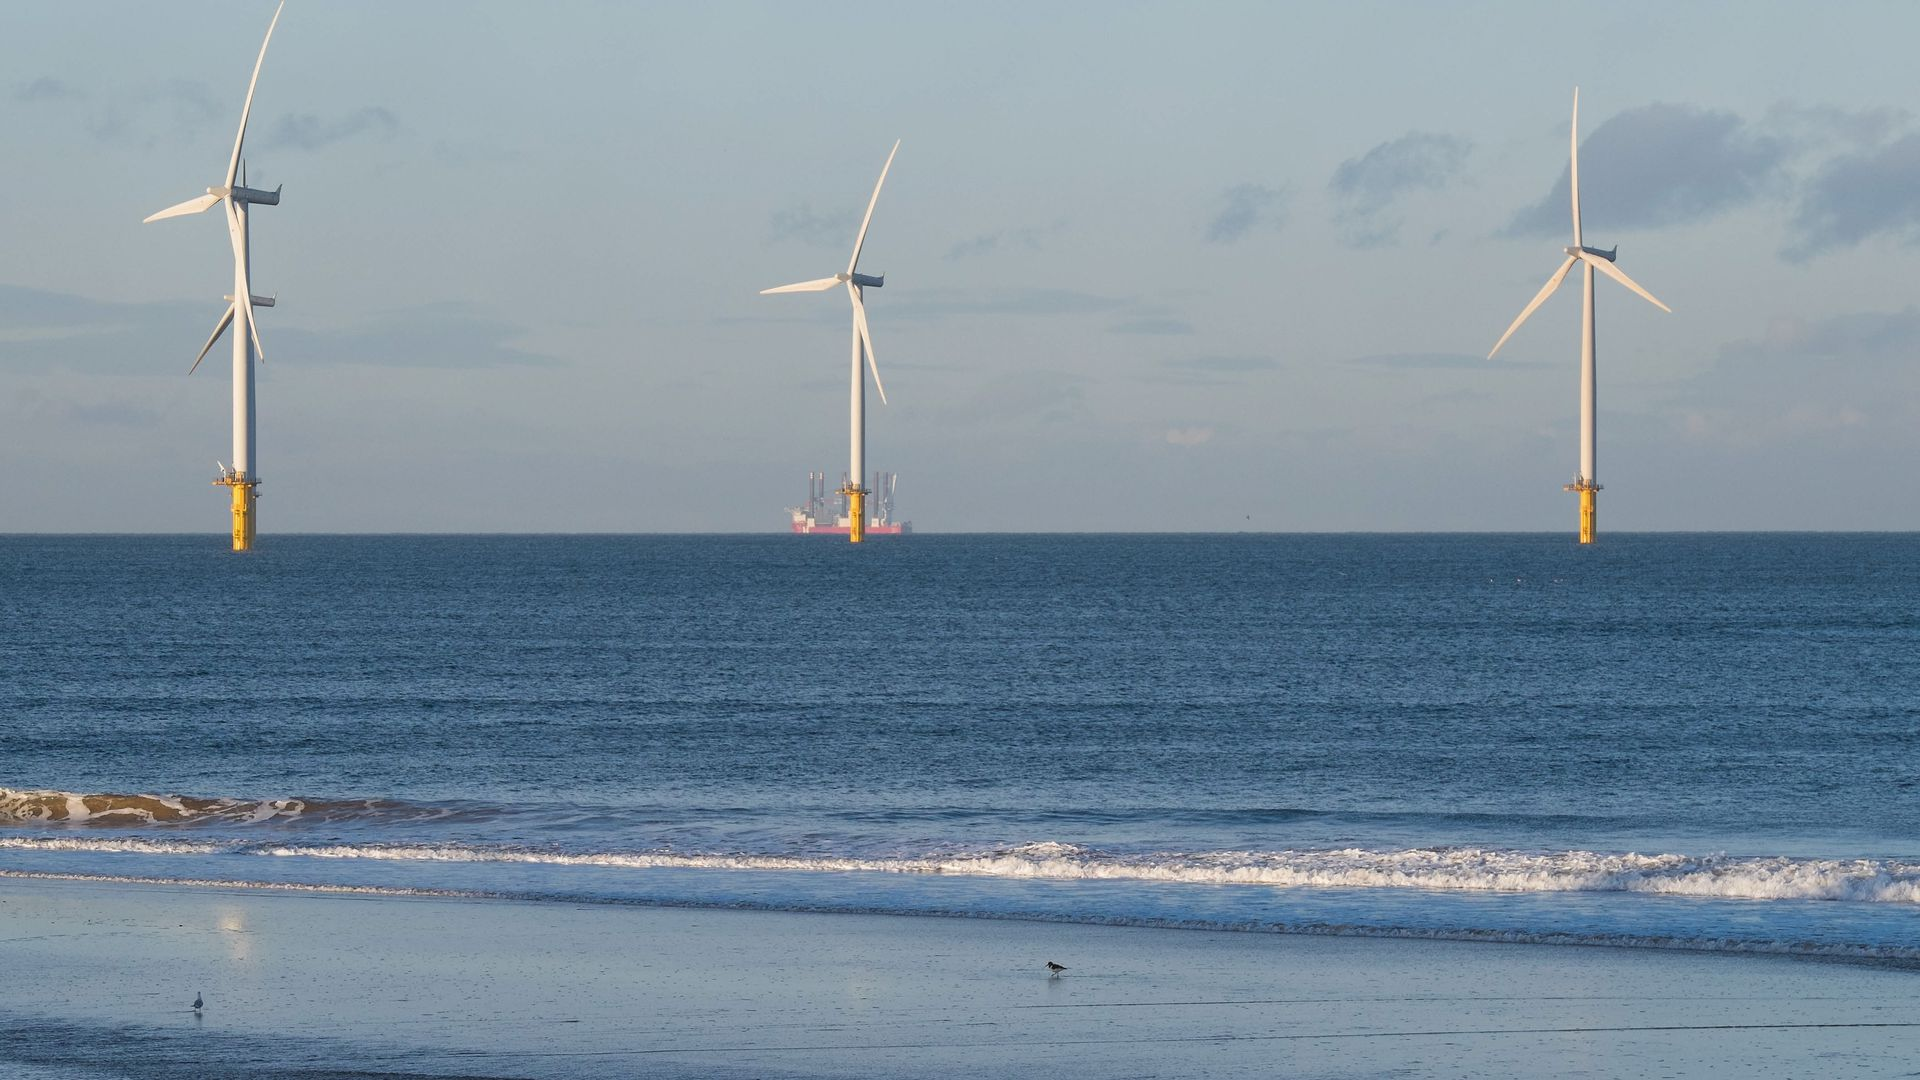 offshore windfarm in Redcar, England.